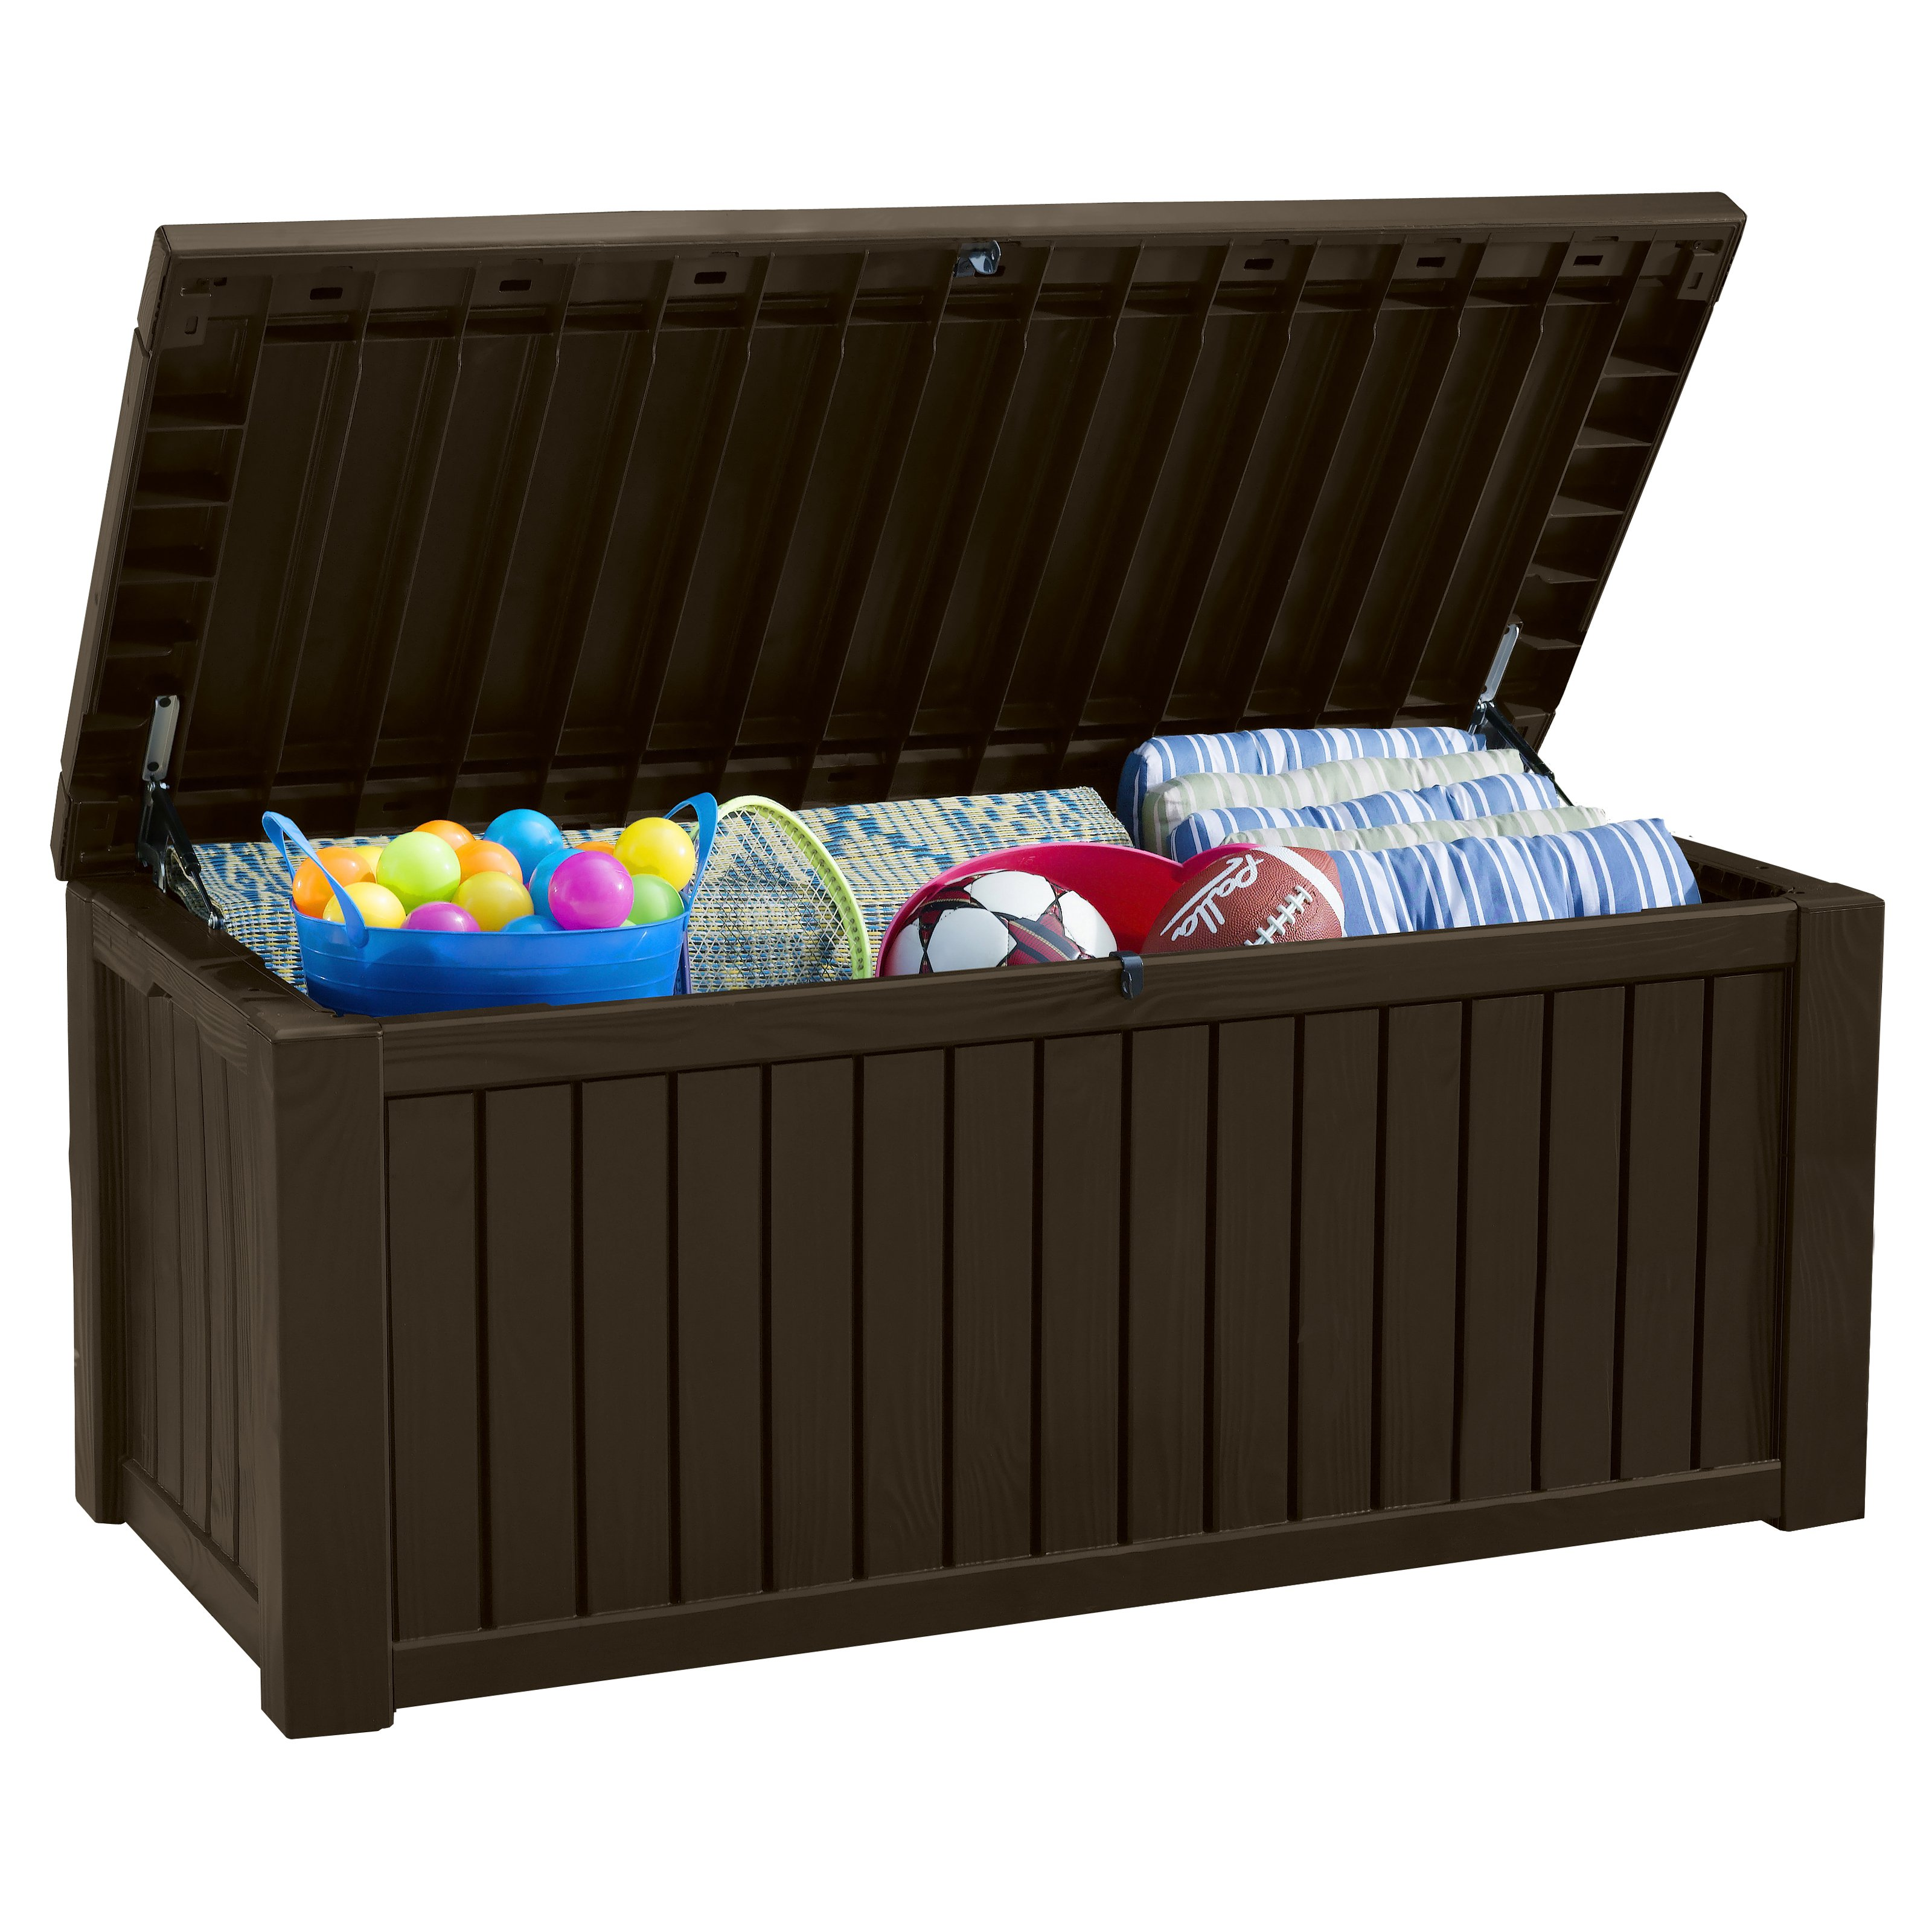 Patio Deck Storage | Keter 150 Gallon Deck Box | Keter Storage Box